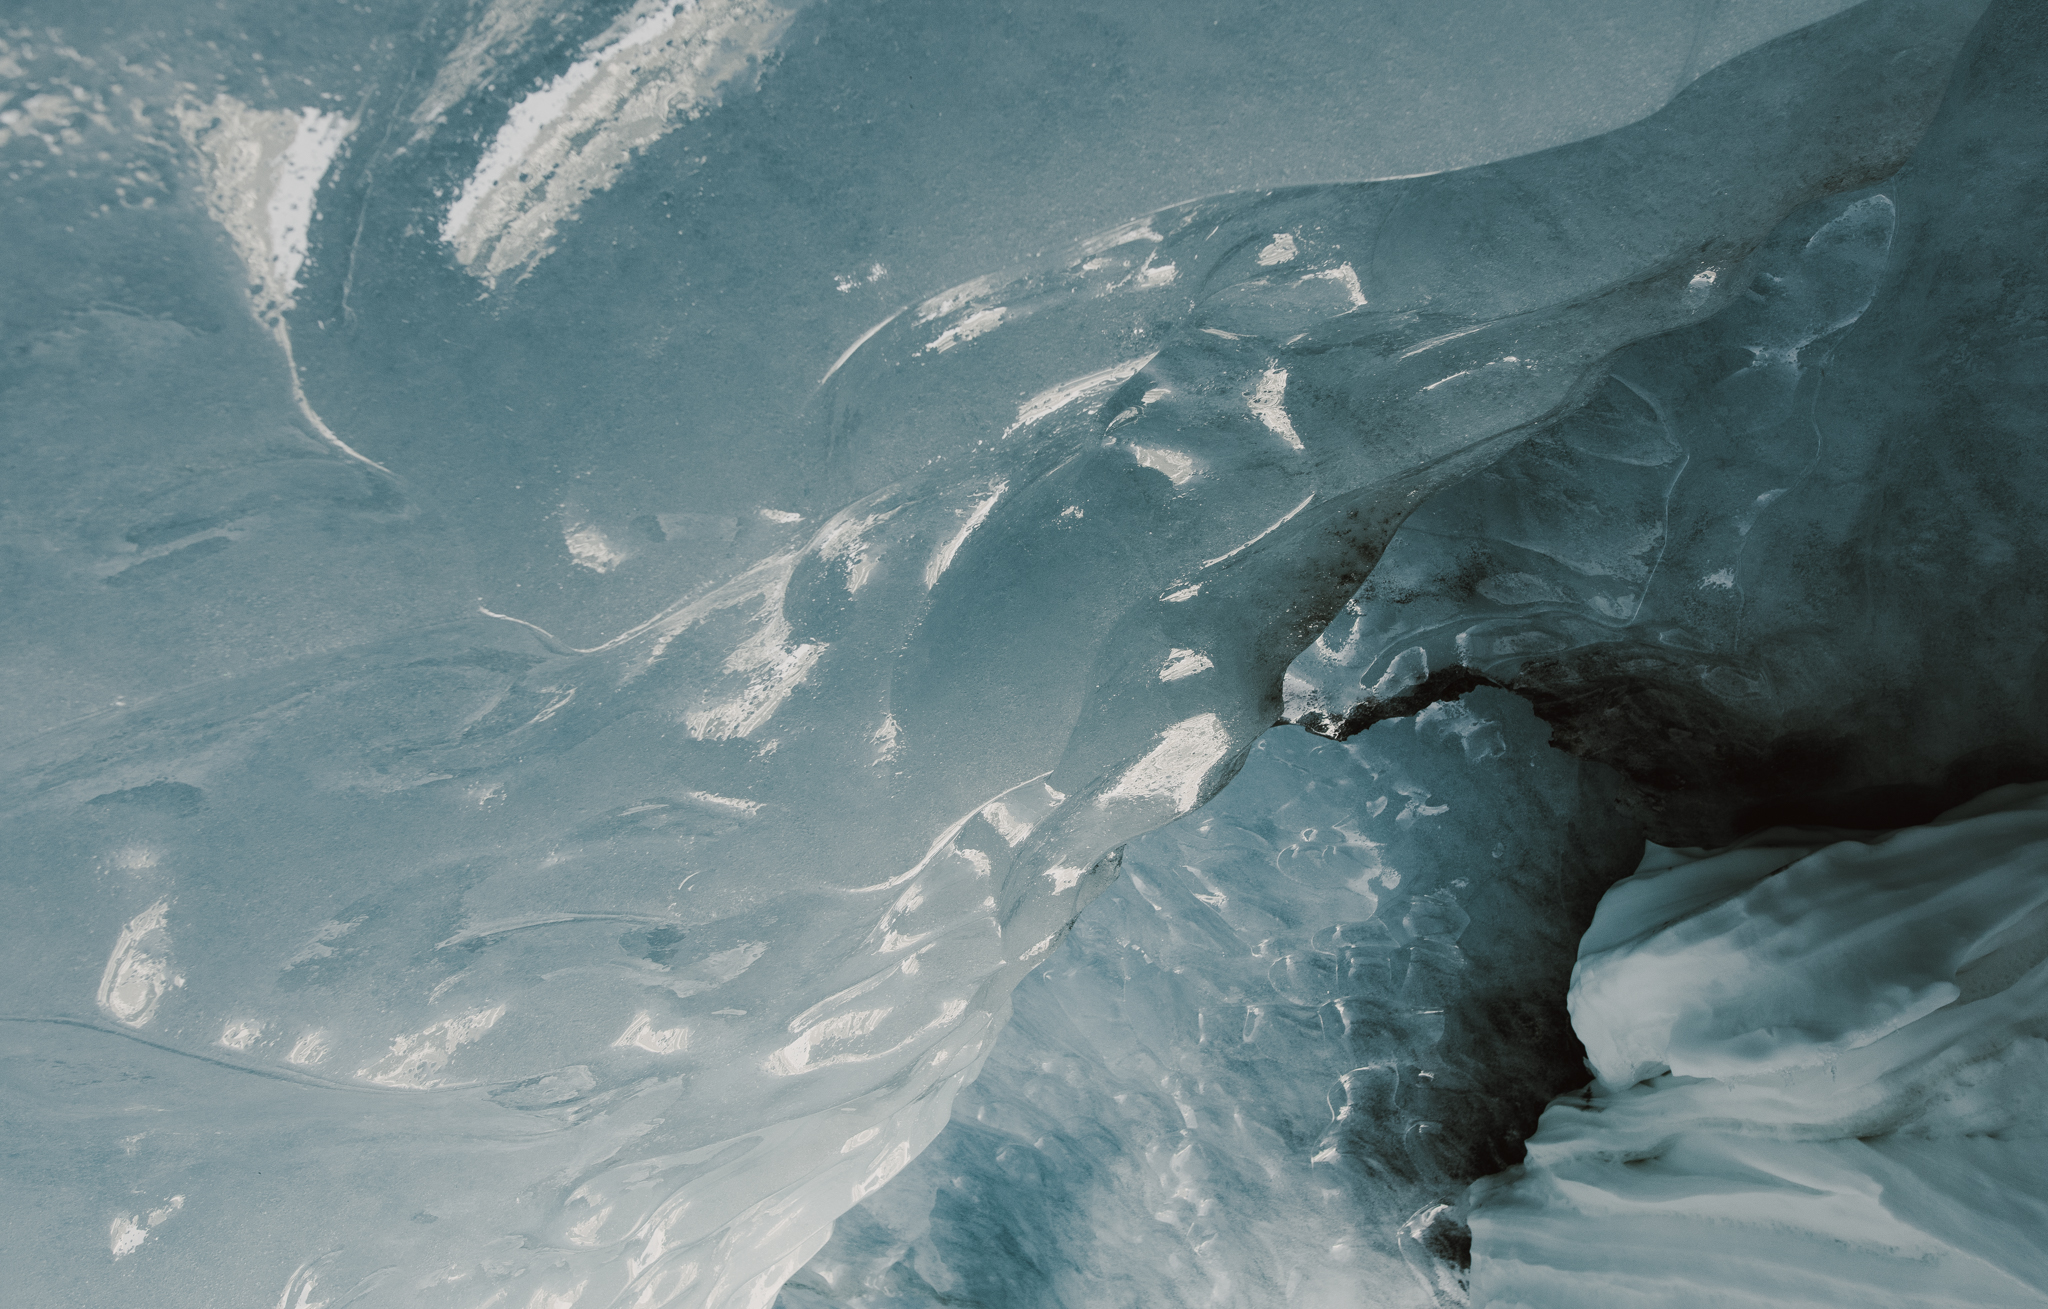 ©The-Ryans-Photo---Athabasca-Glacier,-Ice-Cave-034.jpg